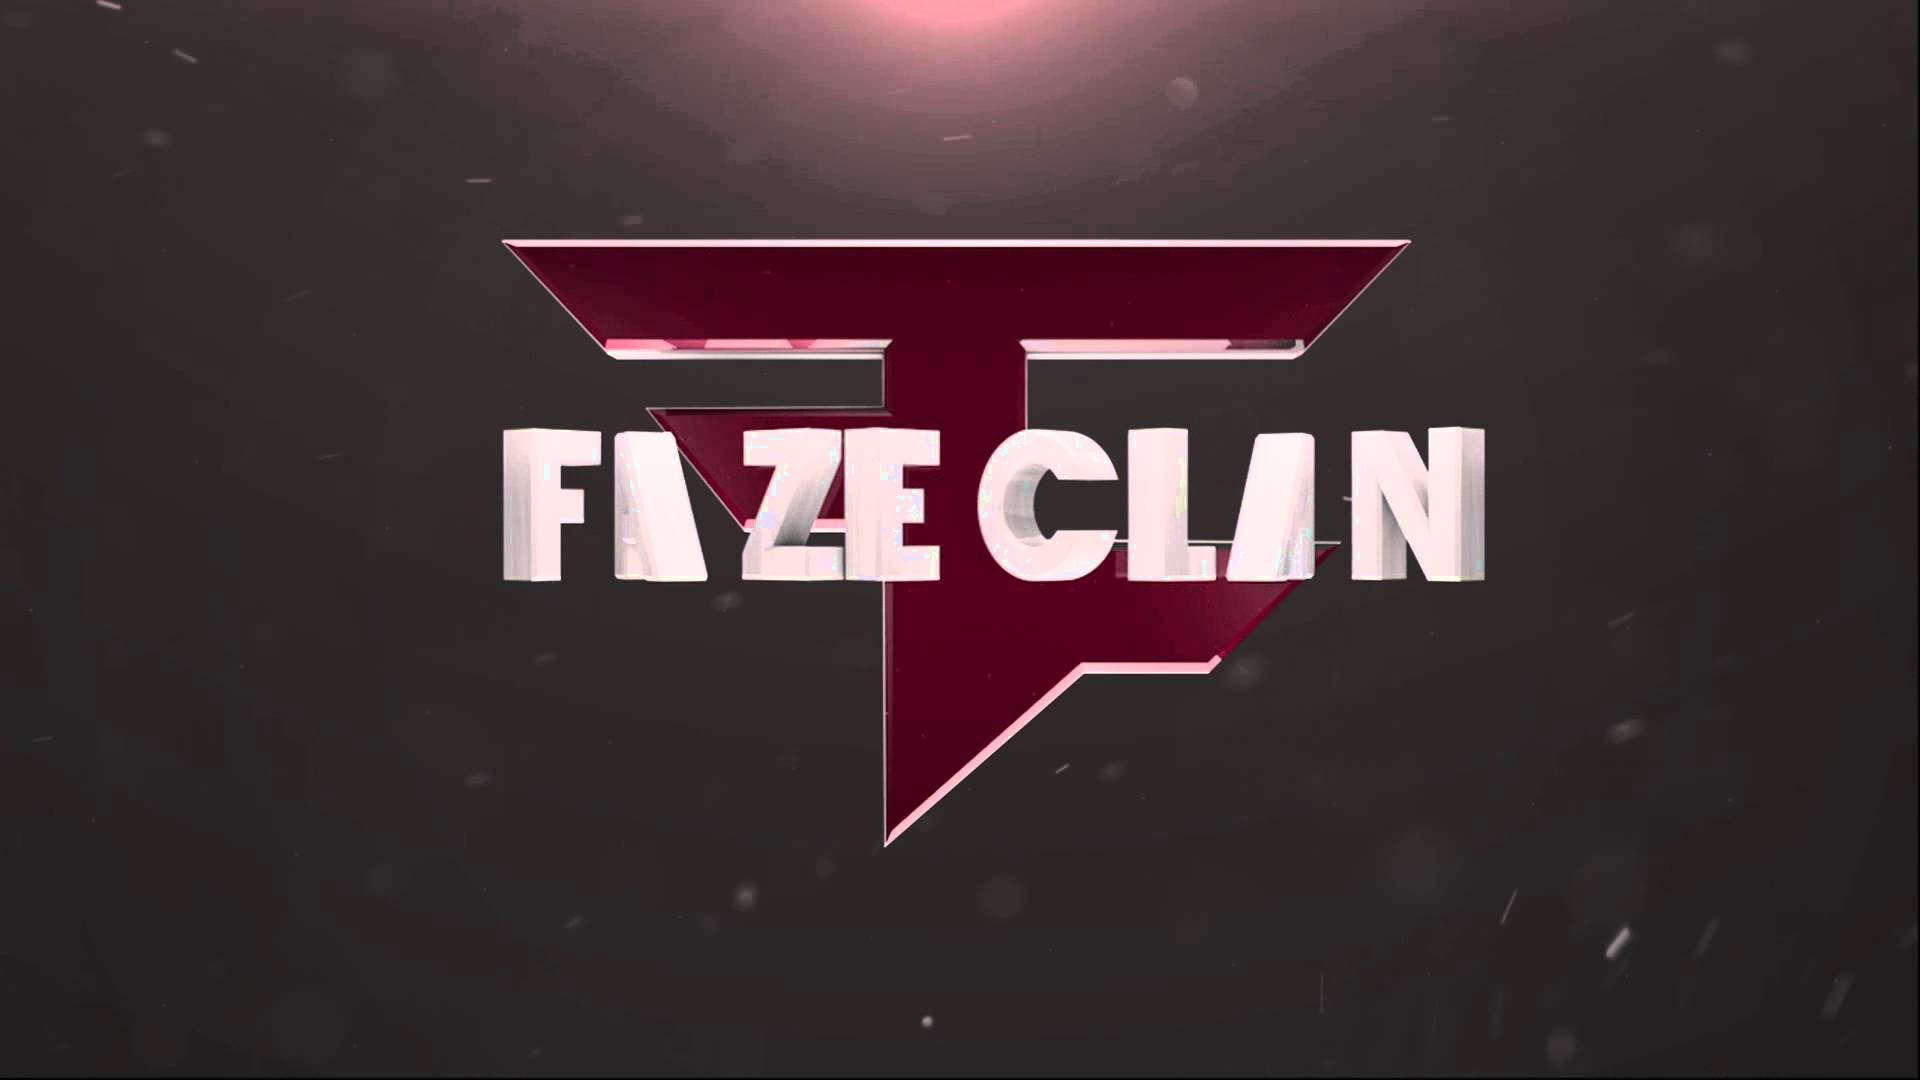 Faze Logo Hd Images Pictures   Becuo 1920x1080